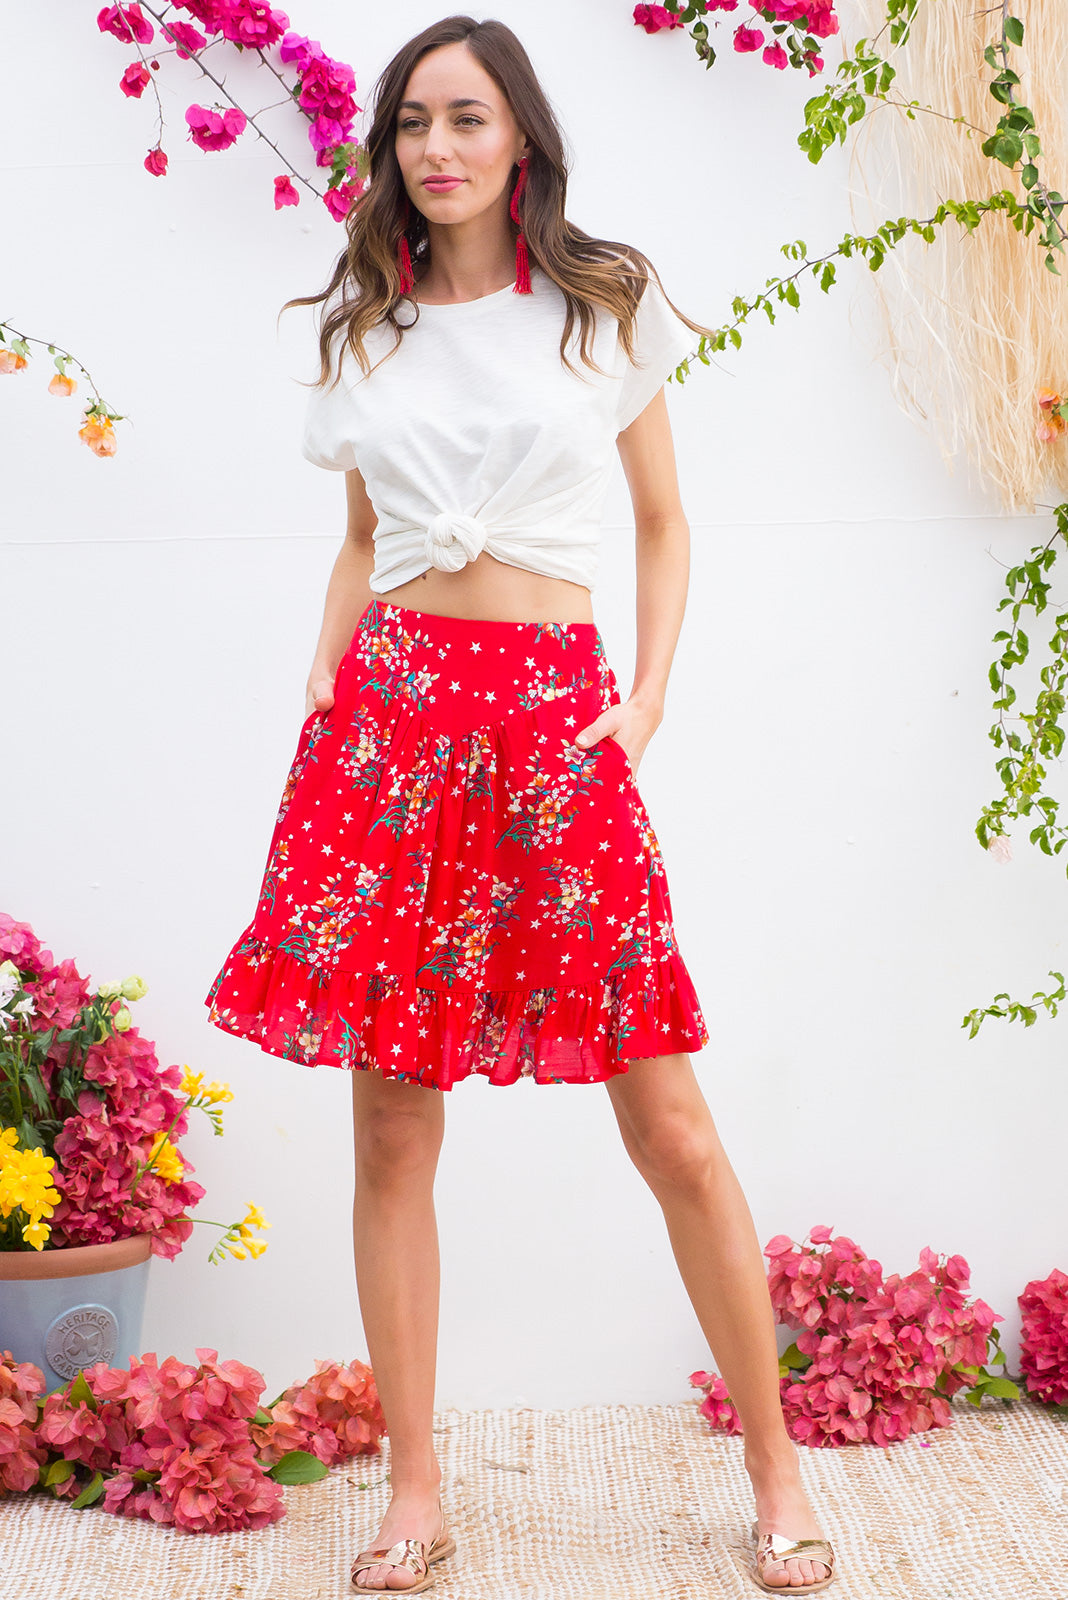 Waves Red Star Skirt with a soft ruched elastic back and pockets in a stunning bright red floral and stars print on woven 100% rayon